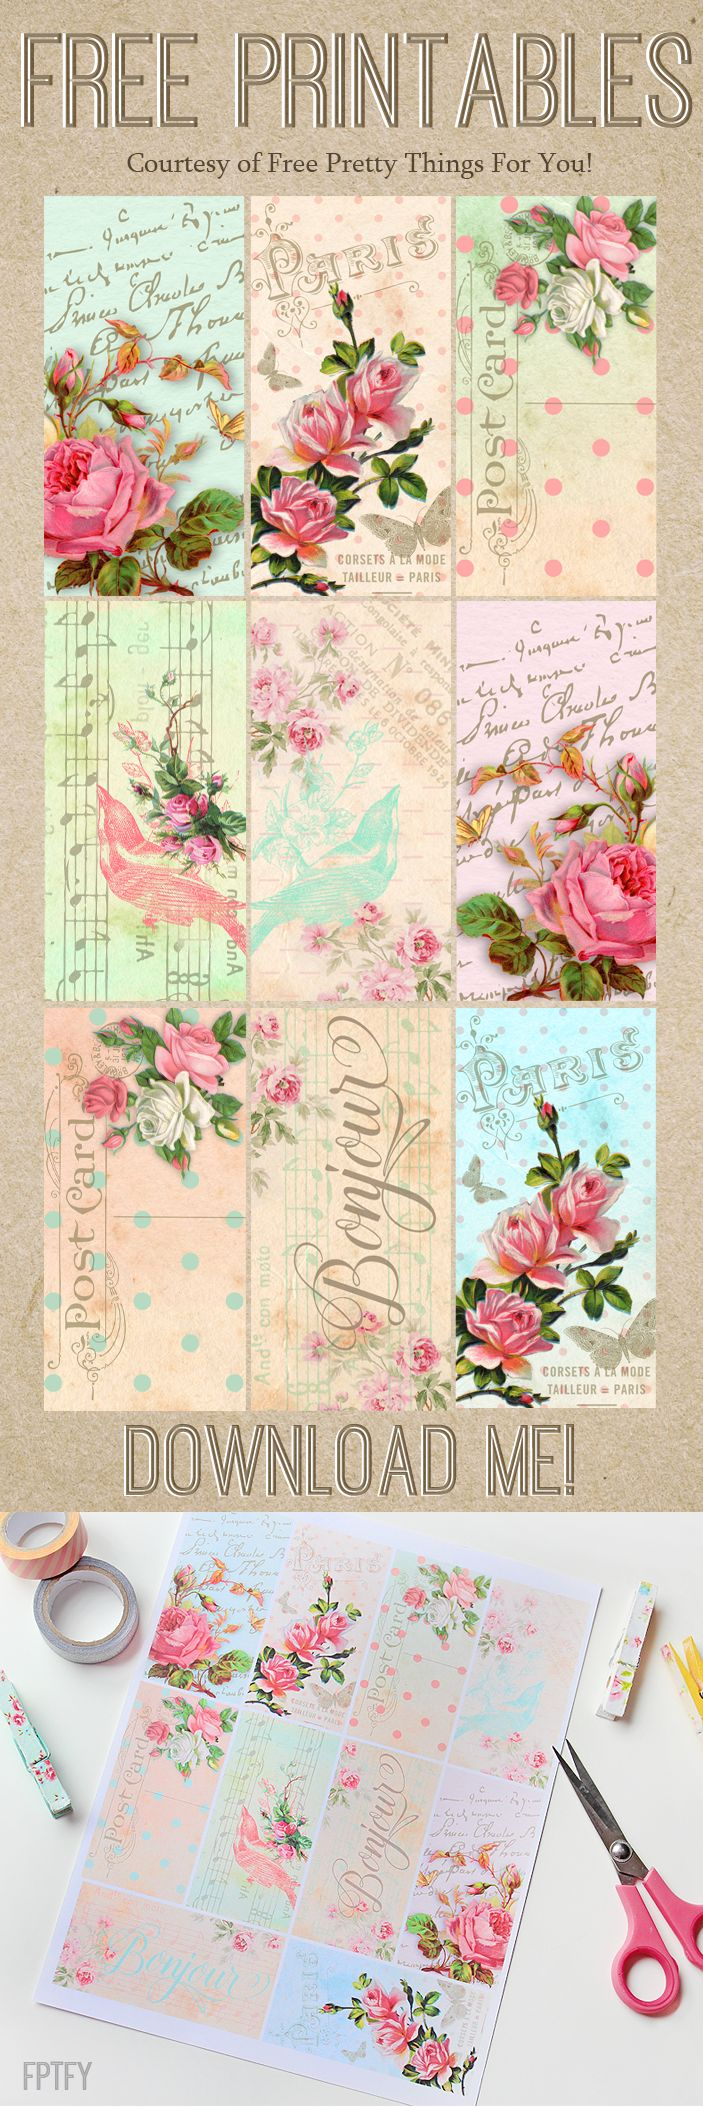 You might also like ... Filter by Post type Post Page Category Freebie images Digital Scrapbooking Mother's day Frame it Valentine Free digital scrapbooking paper Large Printables Tags Free Vintage Baby Easter Birthday Free Digital Scrapbooking Kits Sort by Title Relevance Gold Foil: 27 Free Pretty ScrapBooking Shapes 2016-02-07 21:37:02 freeprettythings 18 Free Printables: Beautiful …